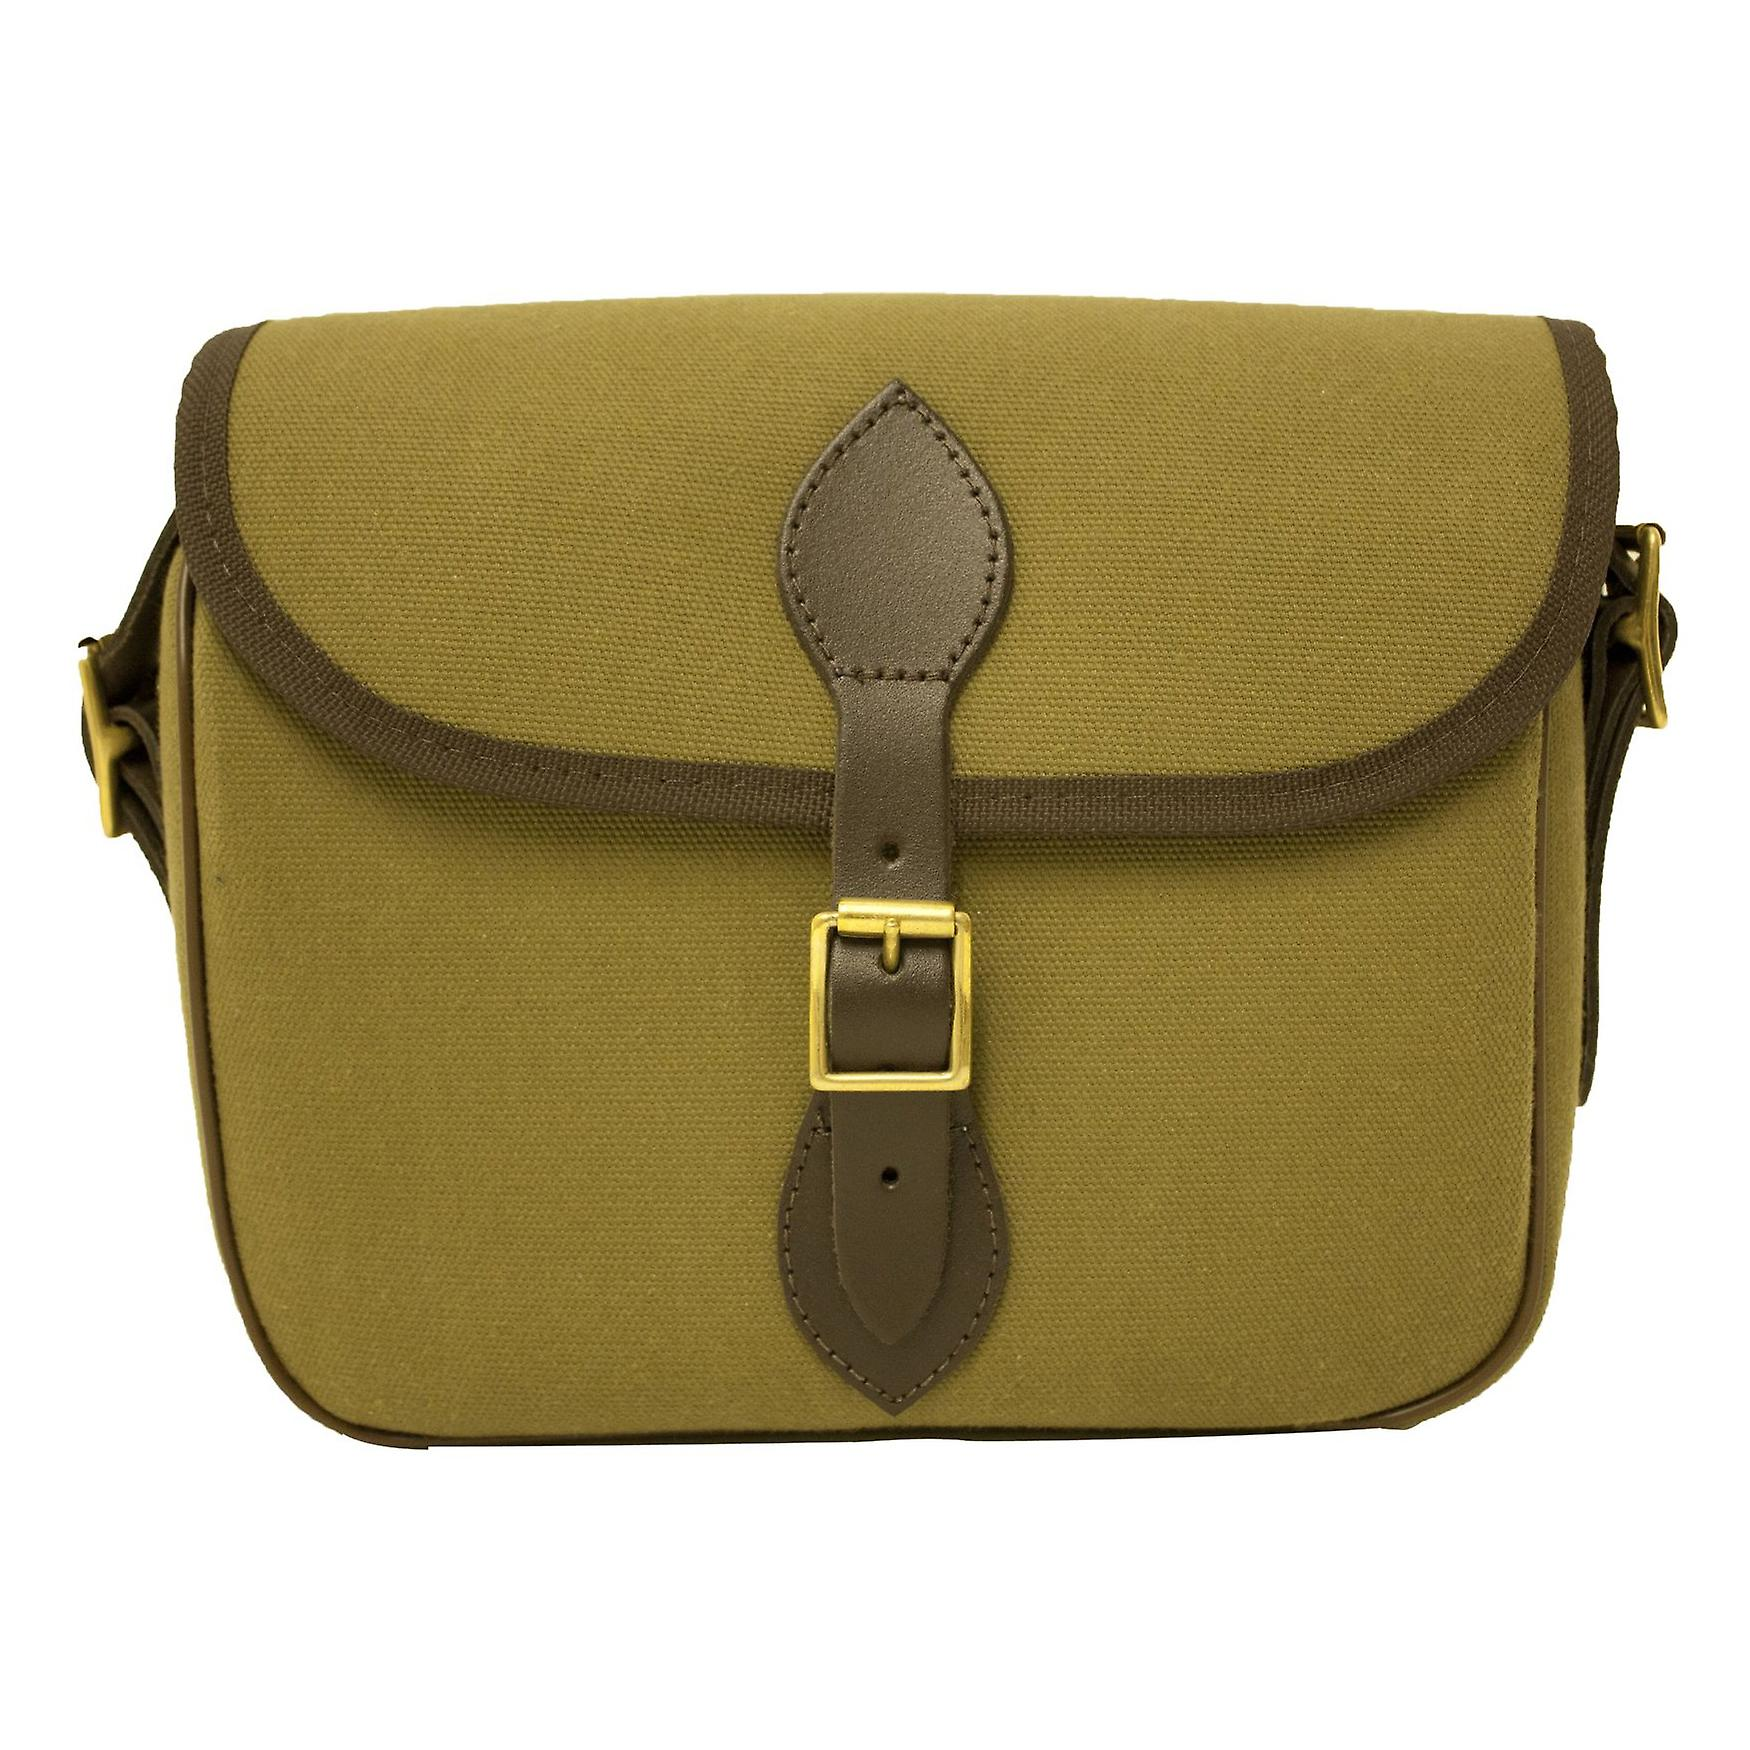 BISLEY quickload cartridge bag 100 capacity - canvas with leather and brass